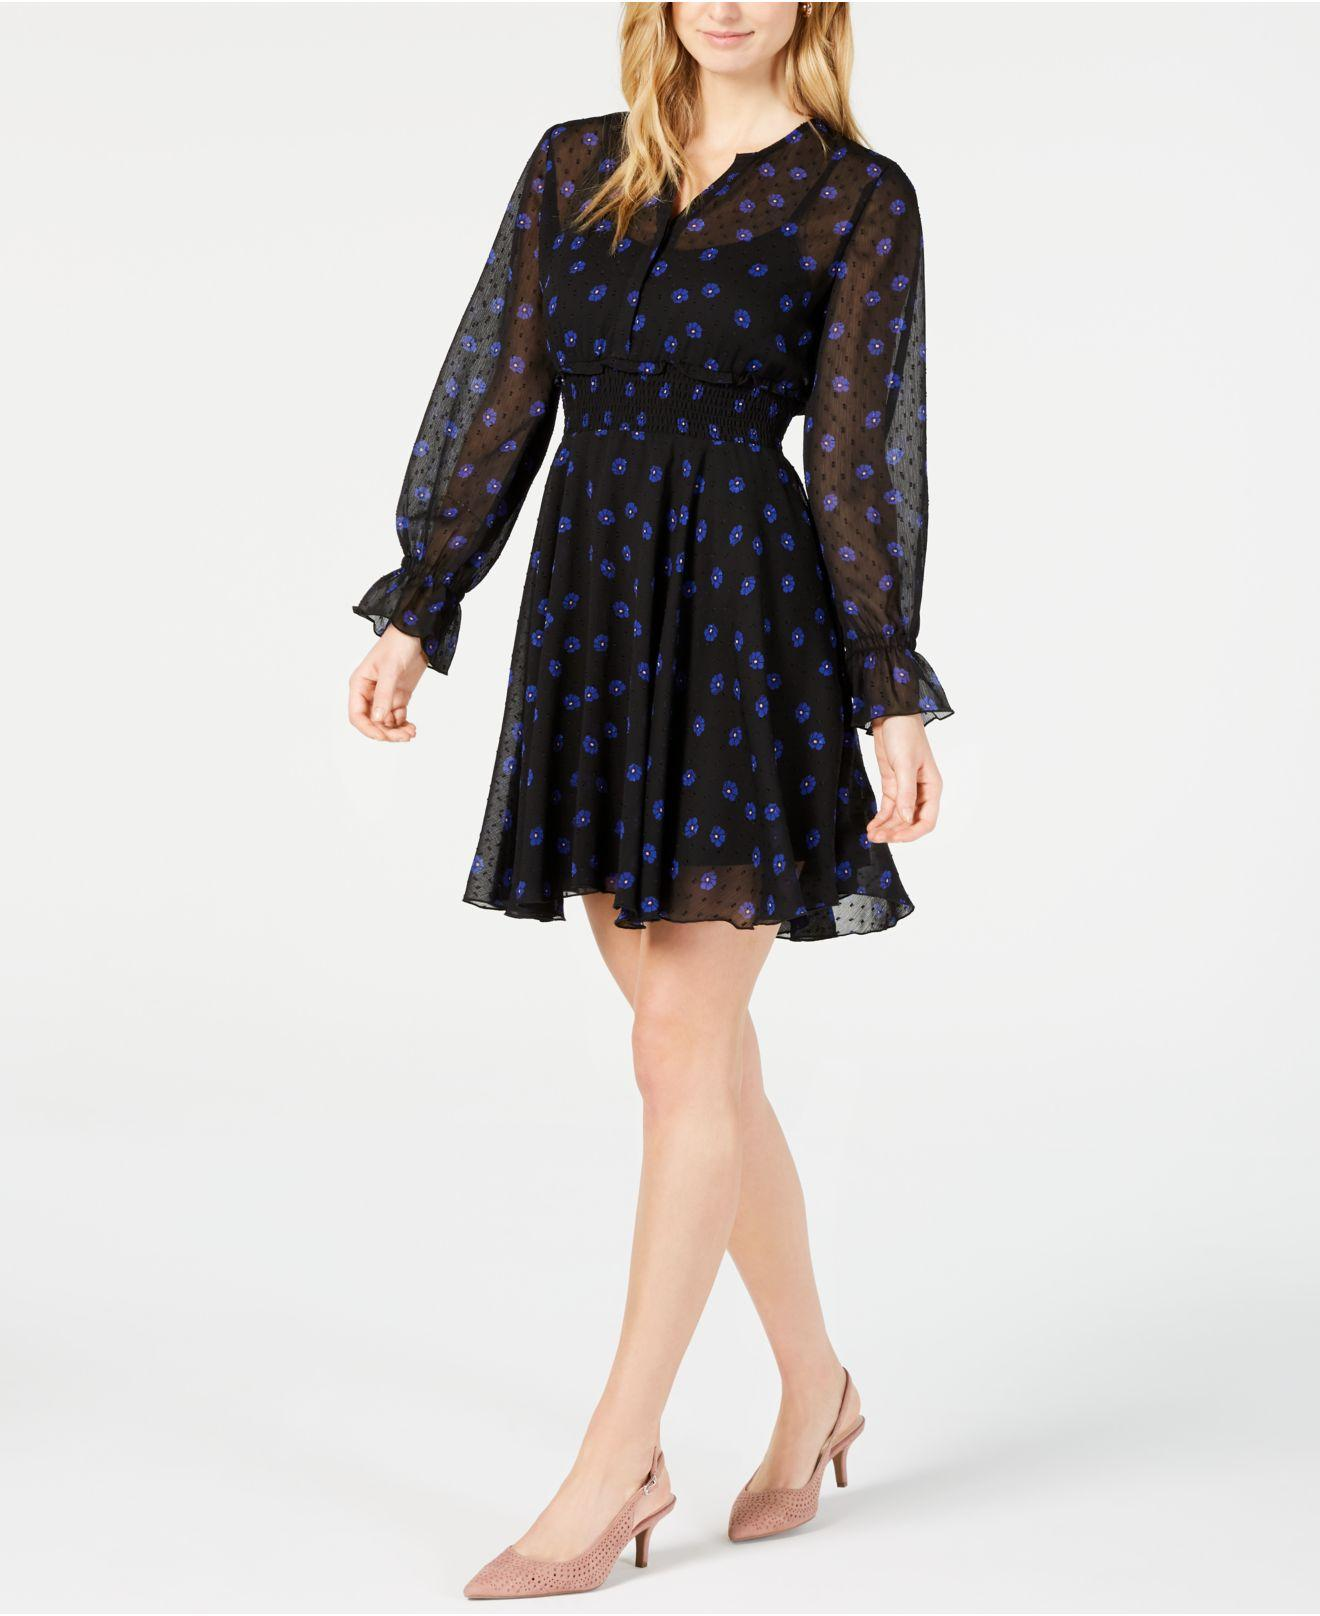 9c965aad231a Lyst - Maison Jules Floral-print Fit   Flare Dress